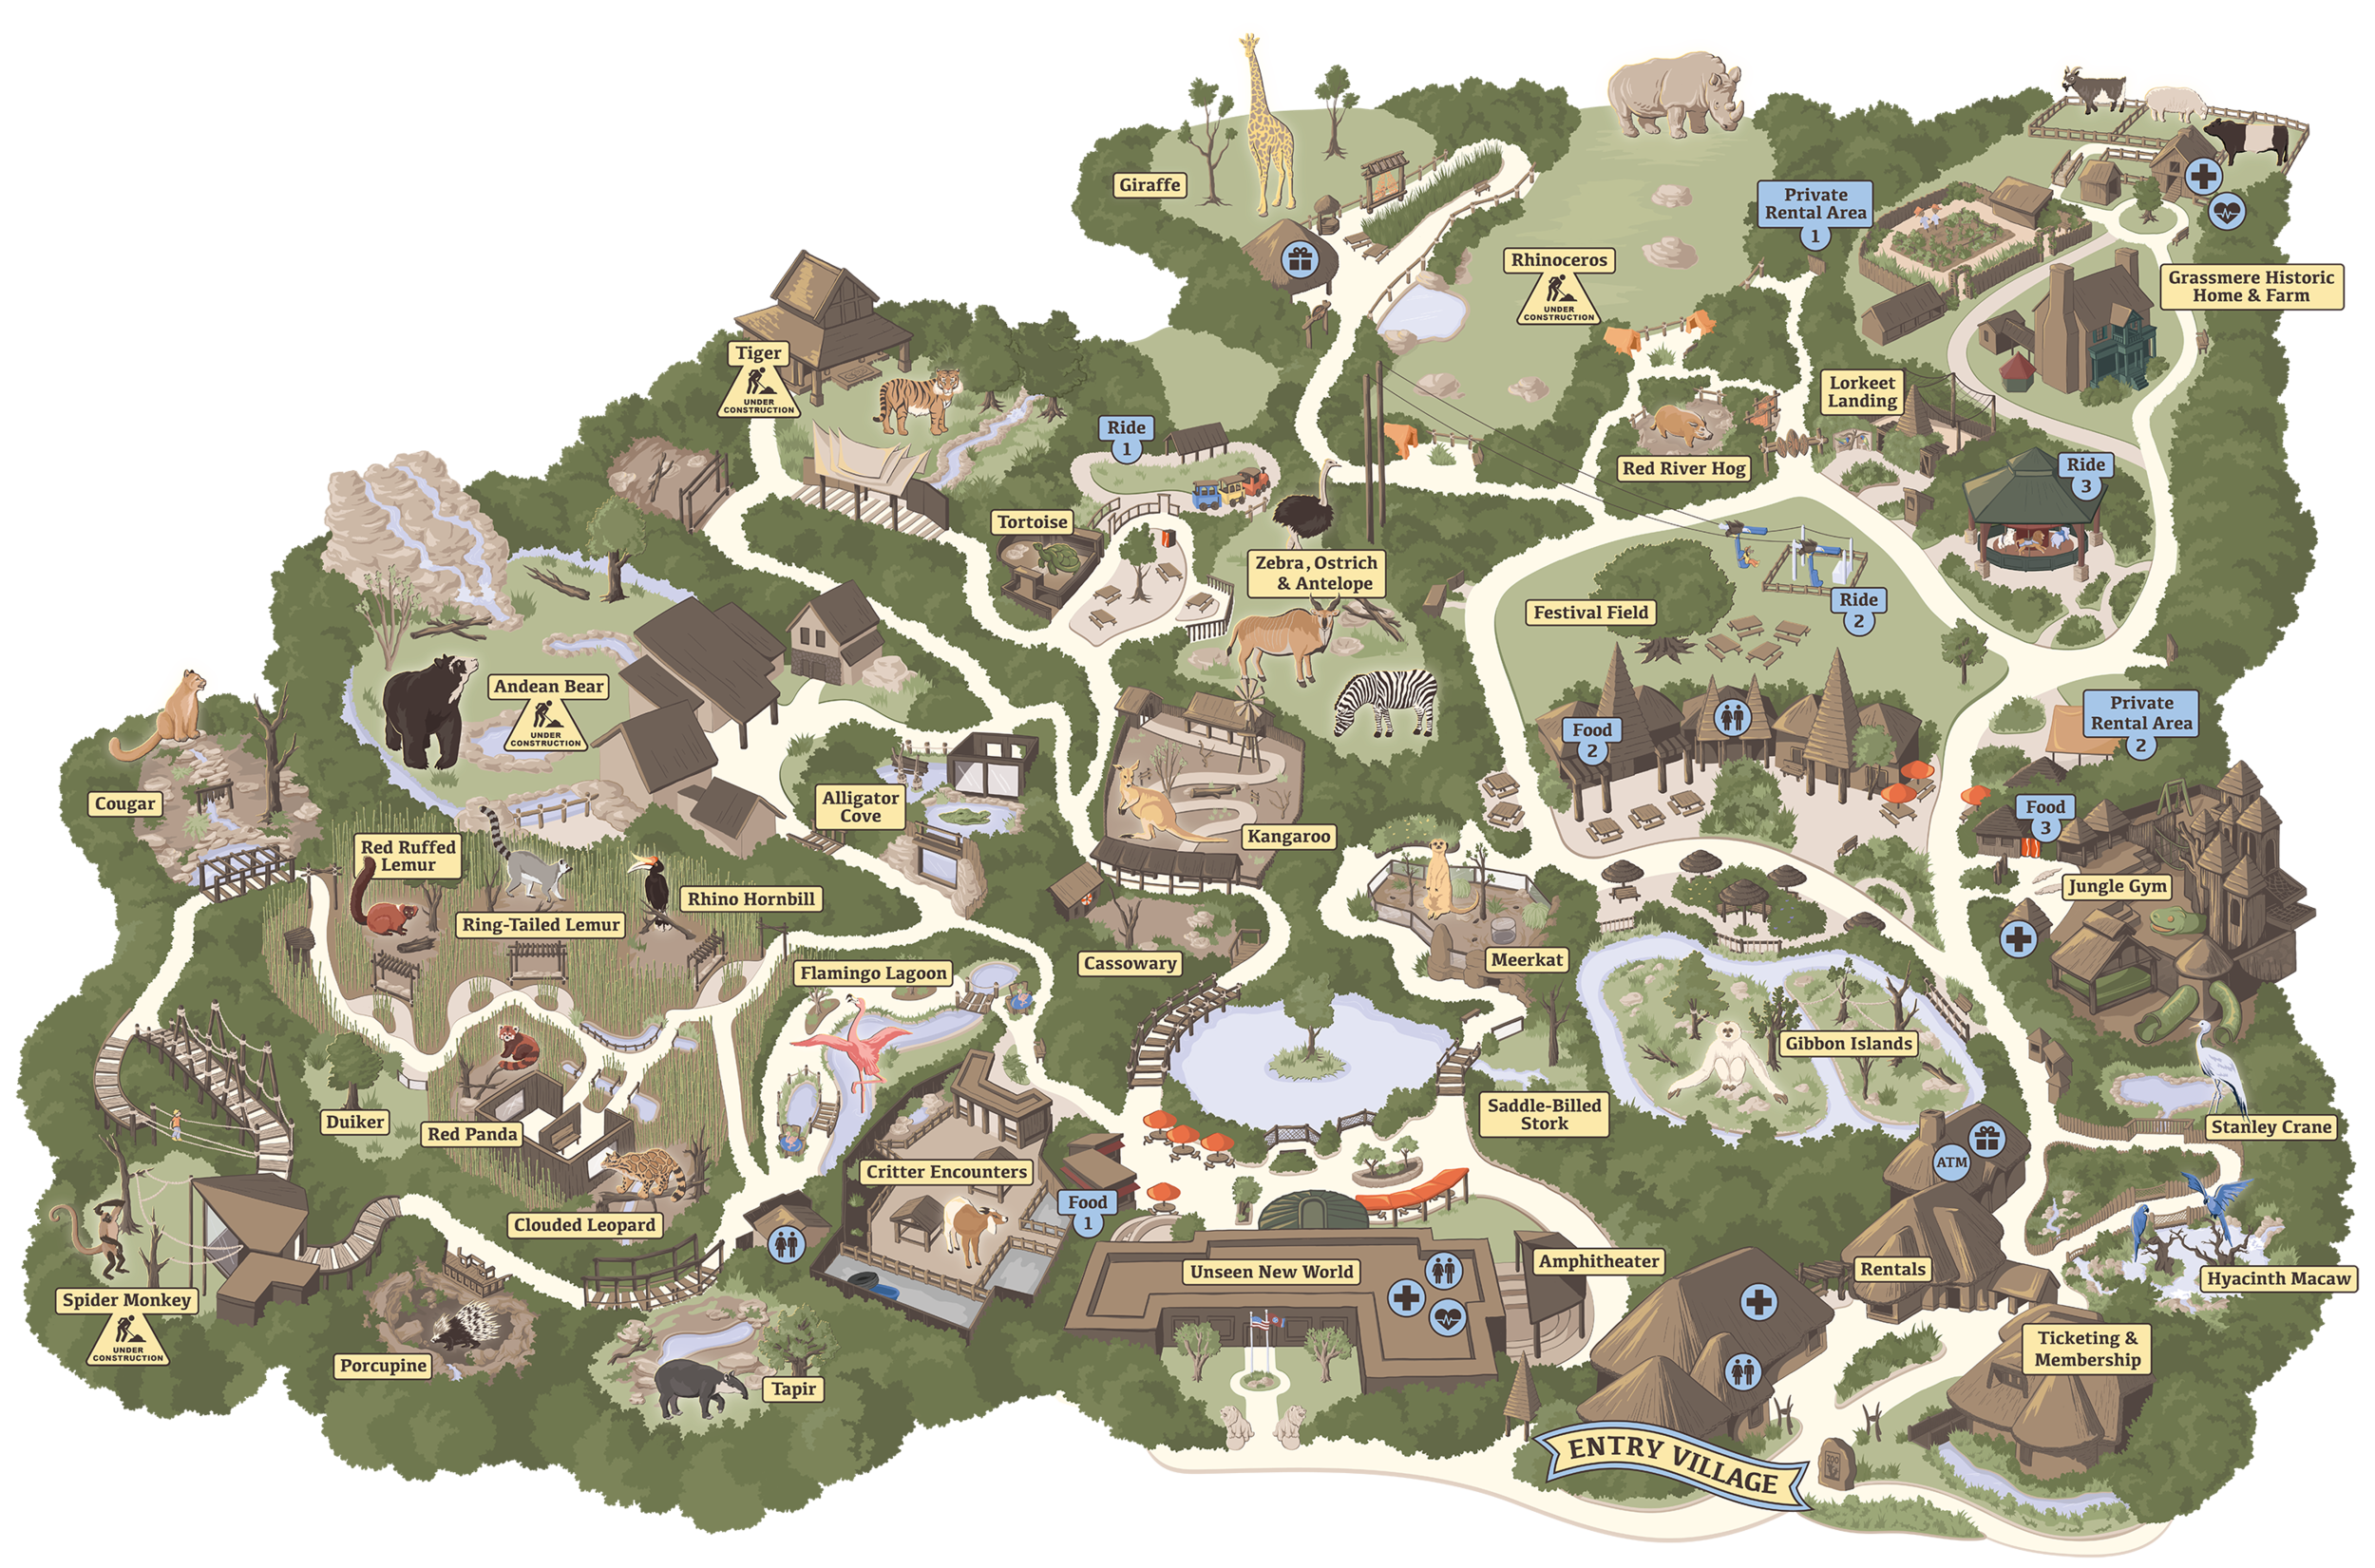 Nashville Zoo Map, Vector Illustration